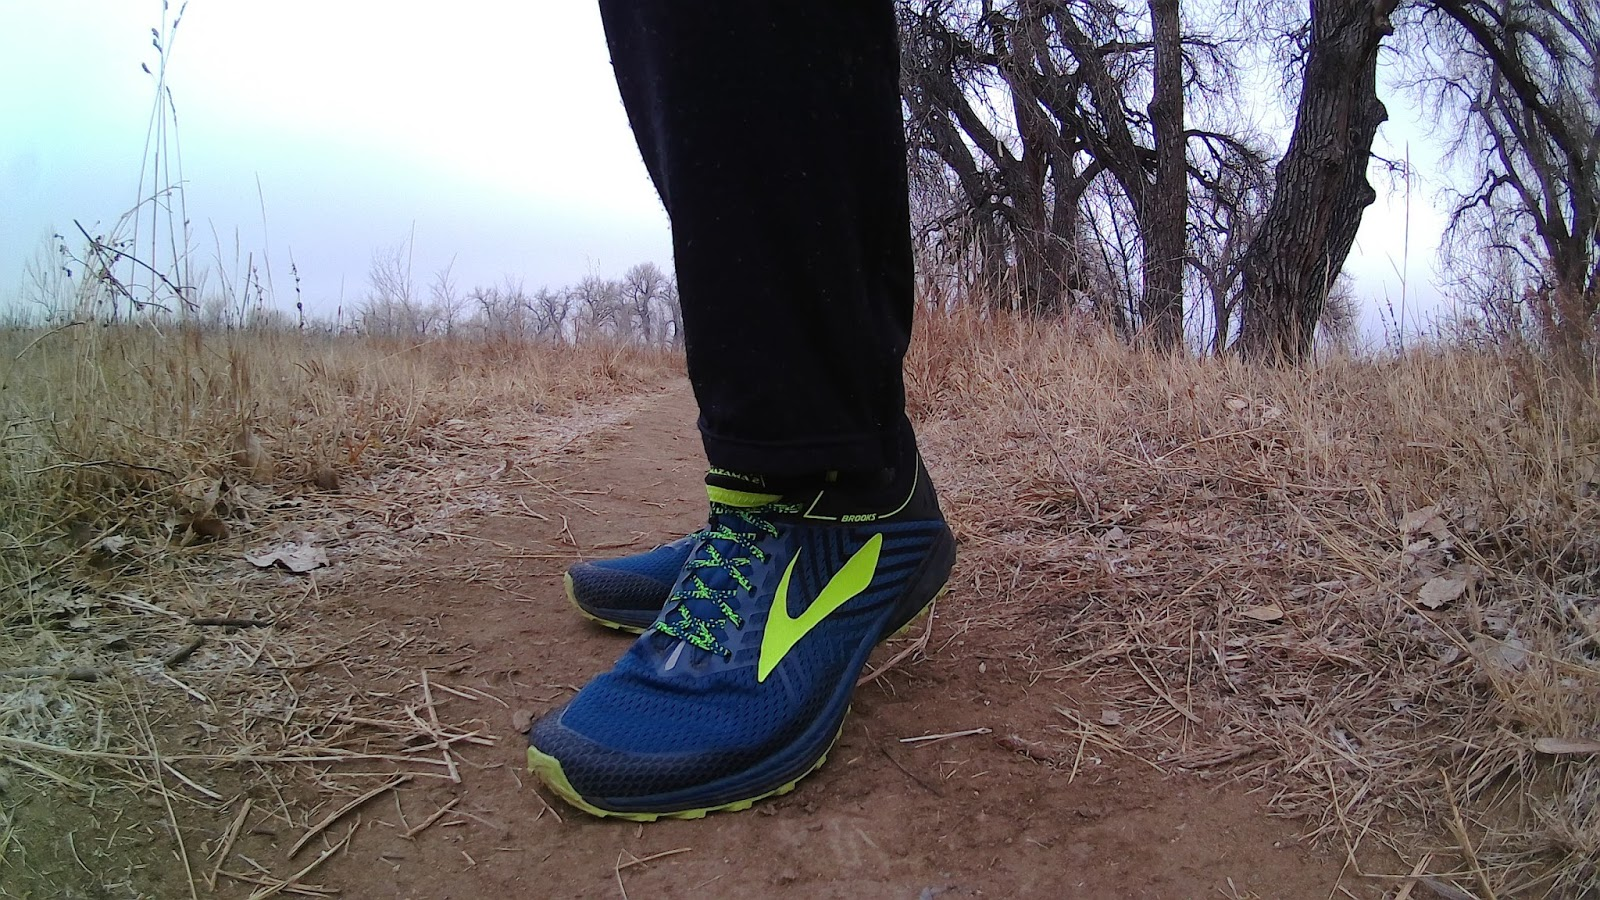 98b9567db2417 Road Trail Run  Brooks Running Mazama 2 Review - Fastest Uphill ...